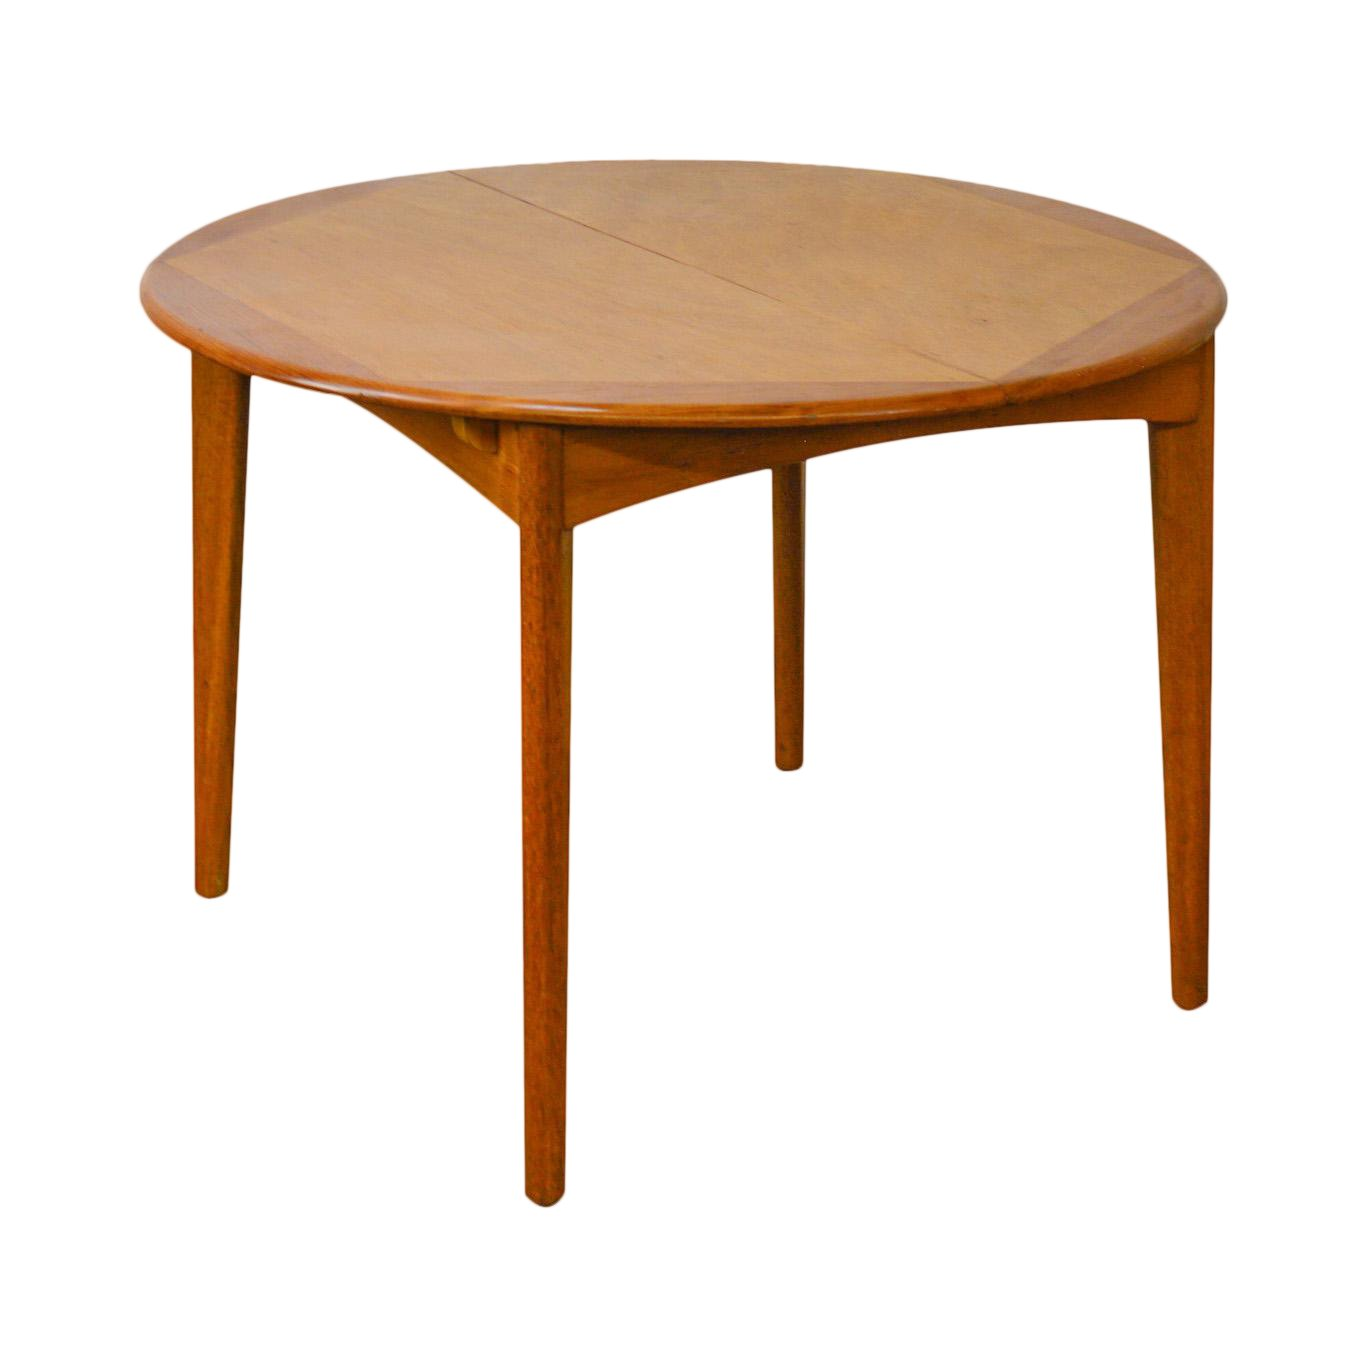 danish modern vintage round teak dining table with pop leaf accent chairish doors bath and beyond area rugs cement base reclining chair threshold wood metal mohawk home ethan